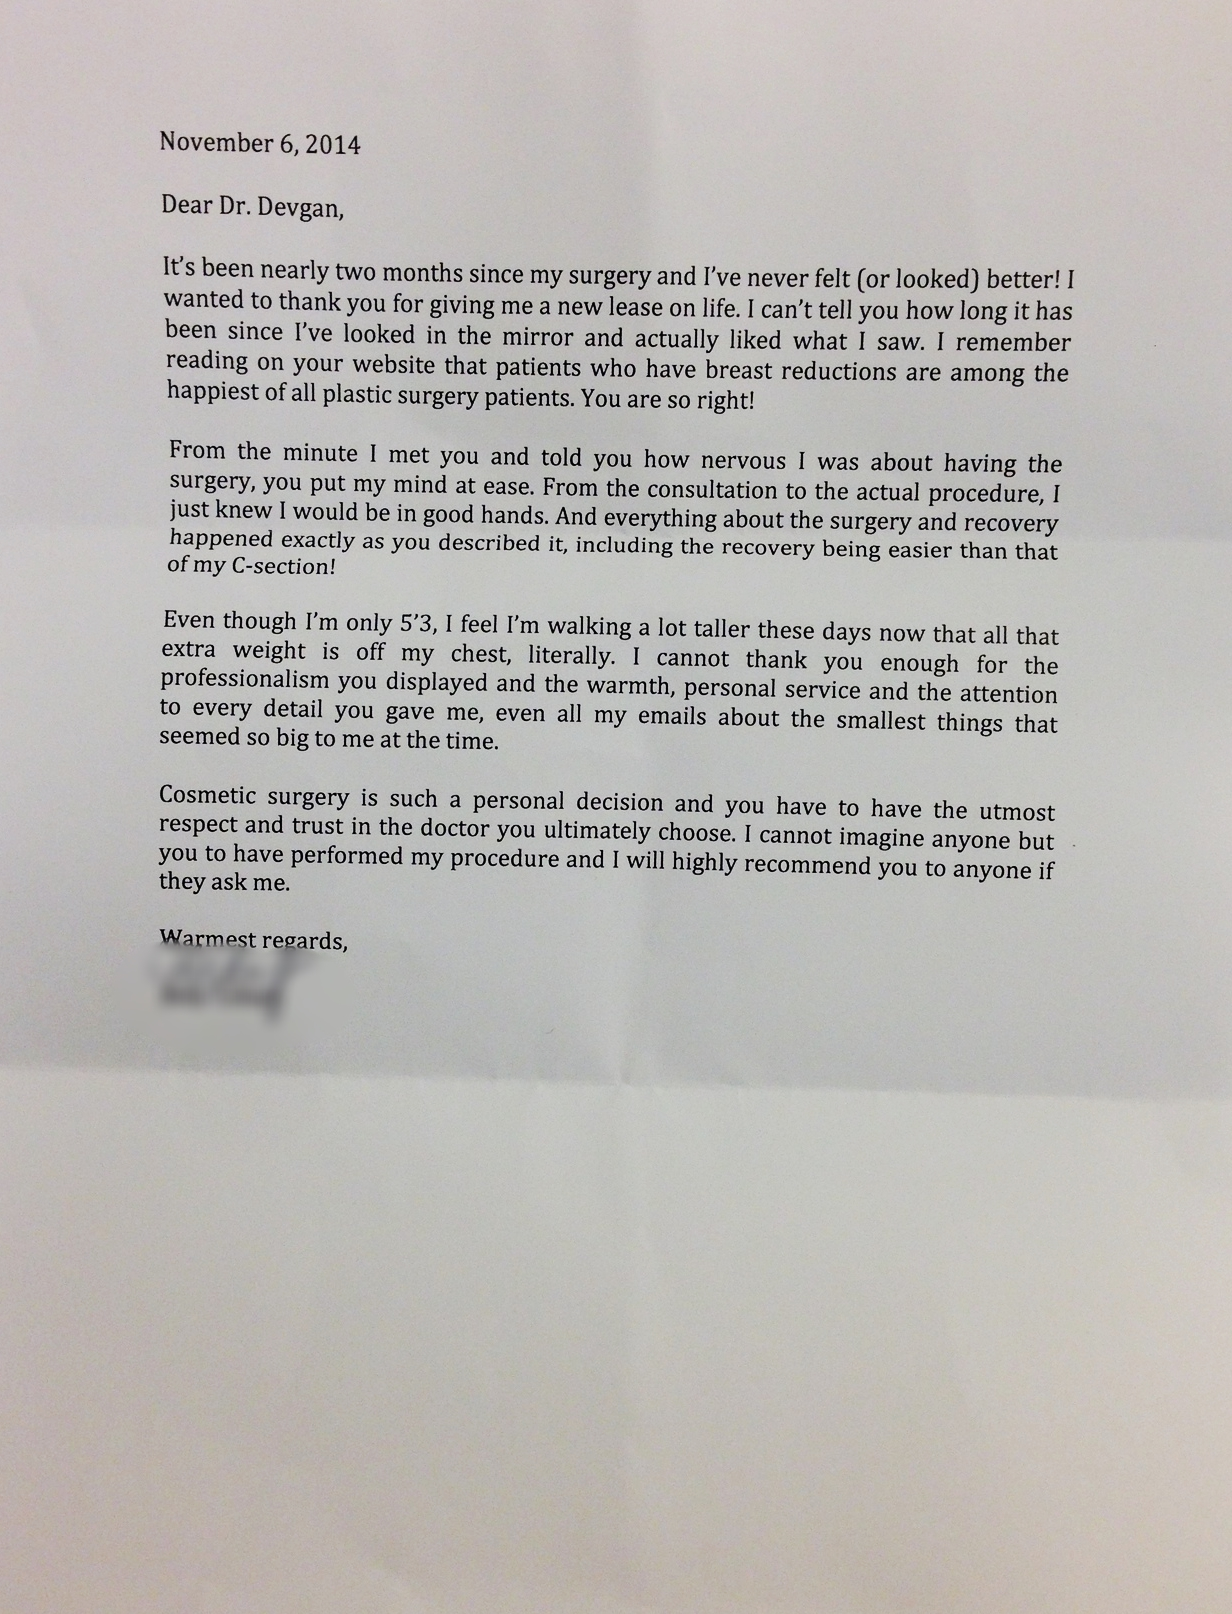 Letter from a breast reduction and liposuction patient, 11/6/14